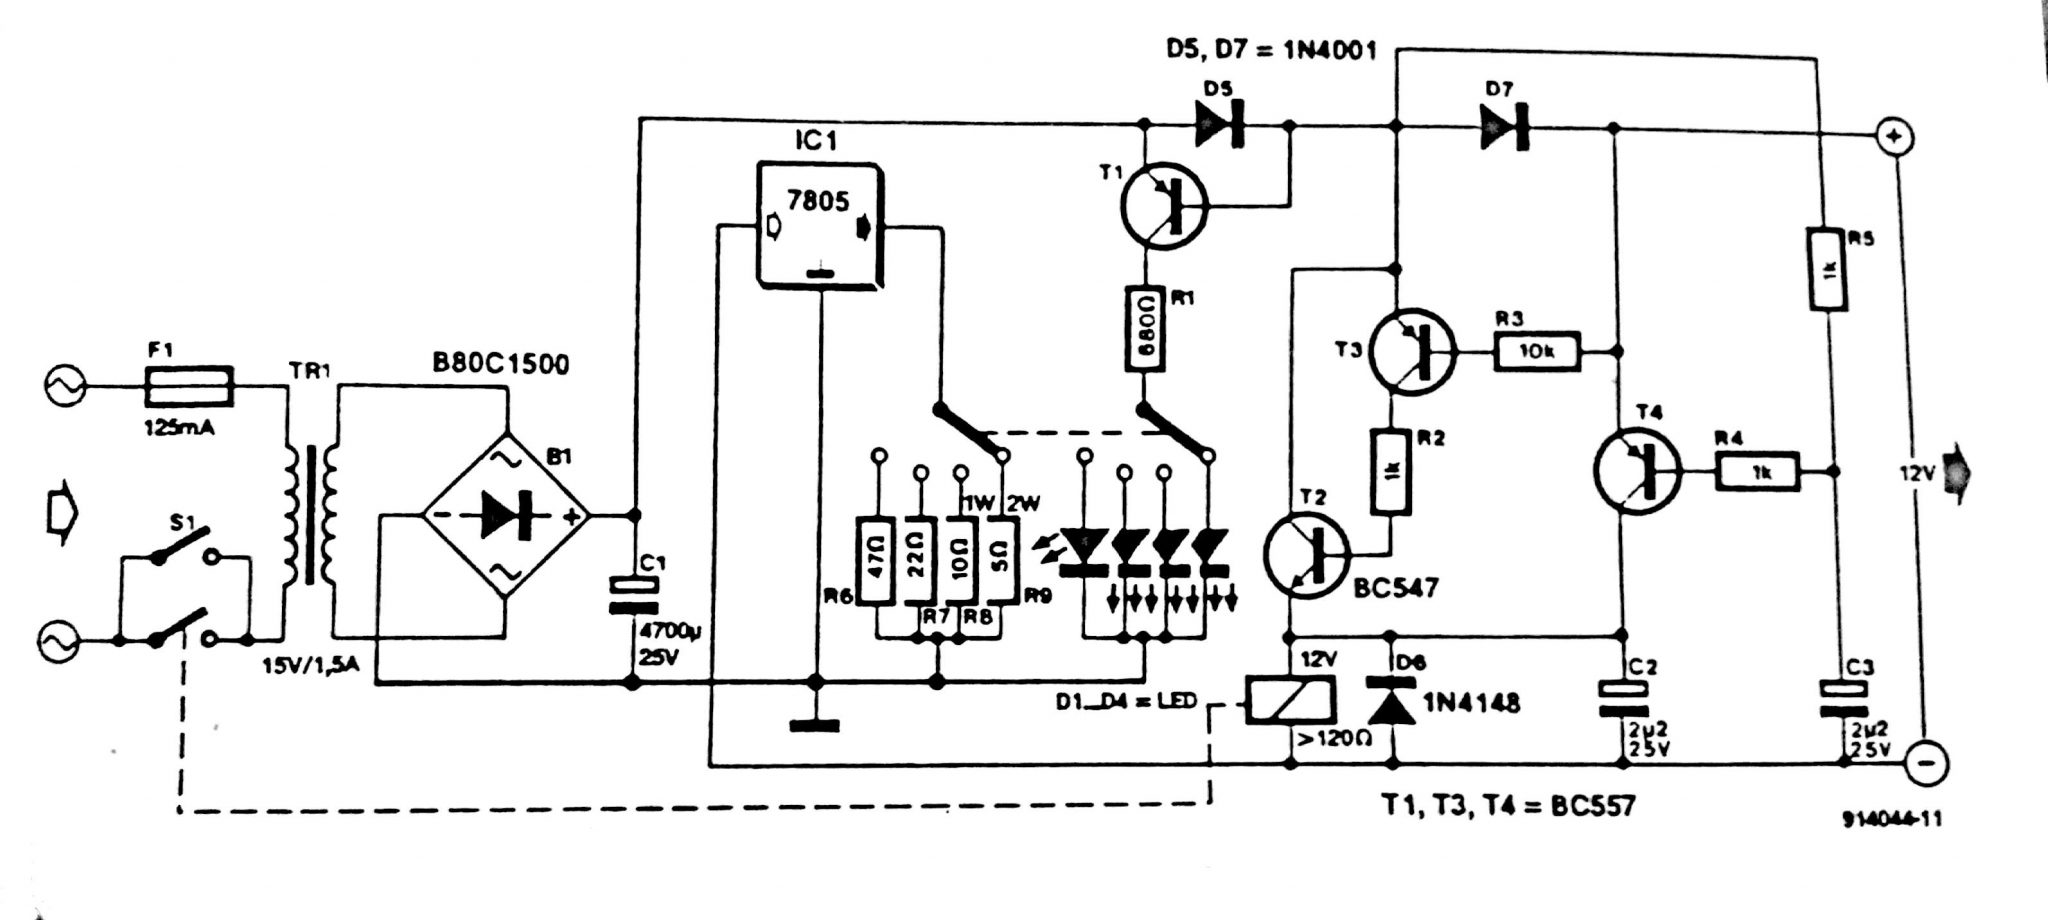 Automatic battery charger circuit diagram circuit diagramz automatic battery charger circuit diagram ccuart